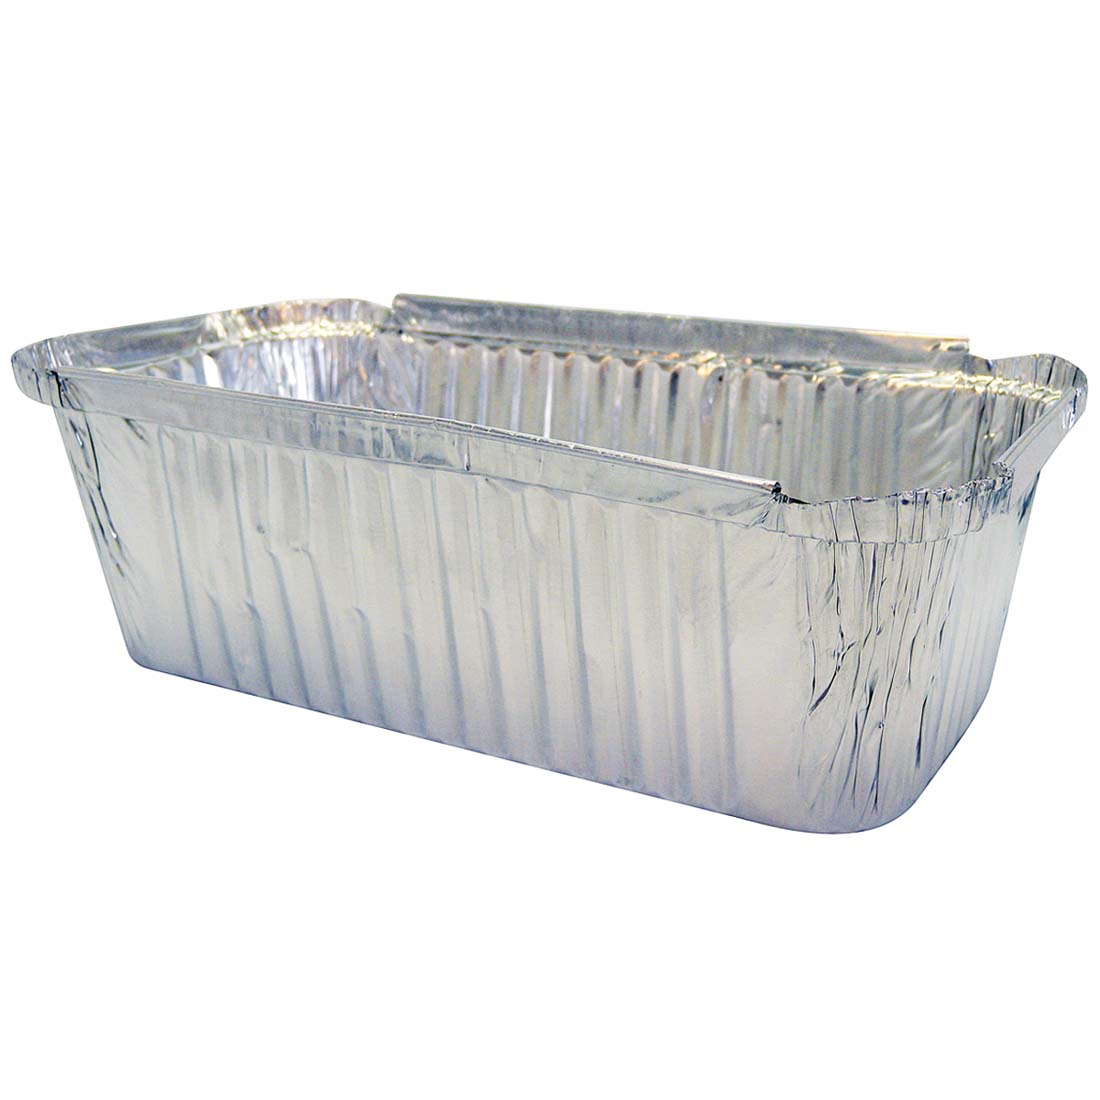 View FOIL LOAF PAN 8.5 X 4.5 X 3 INCH RECTANGULAR